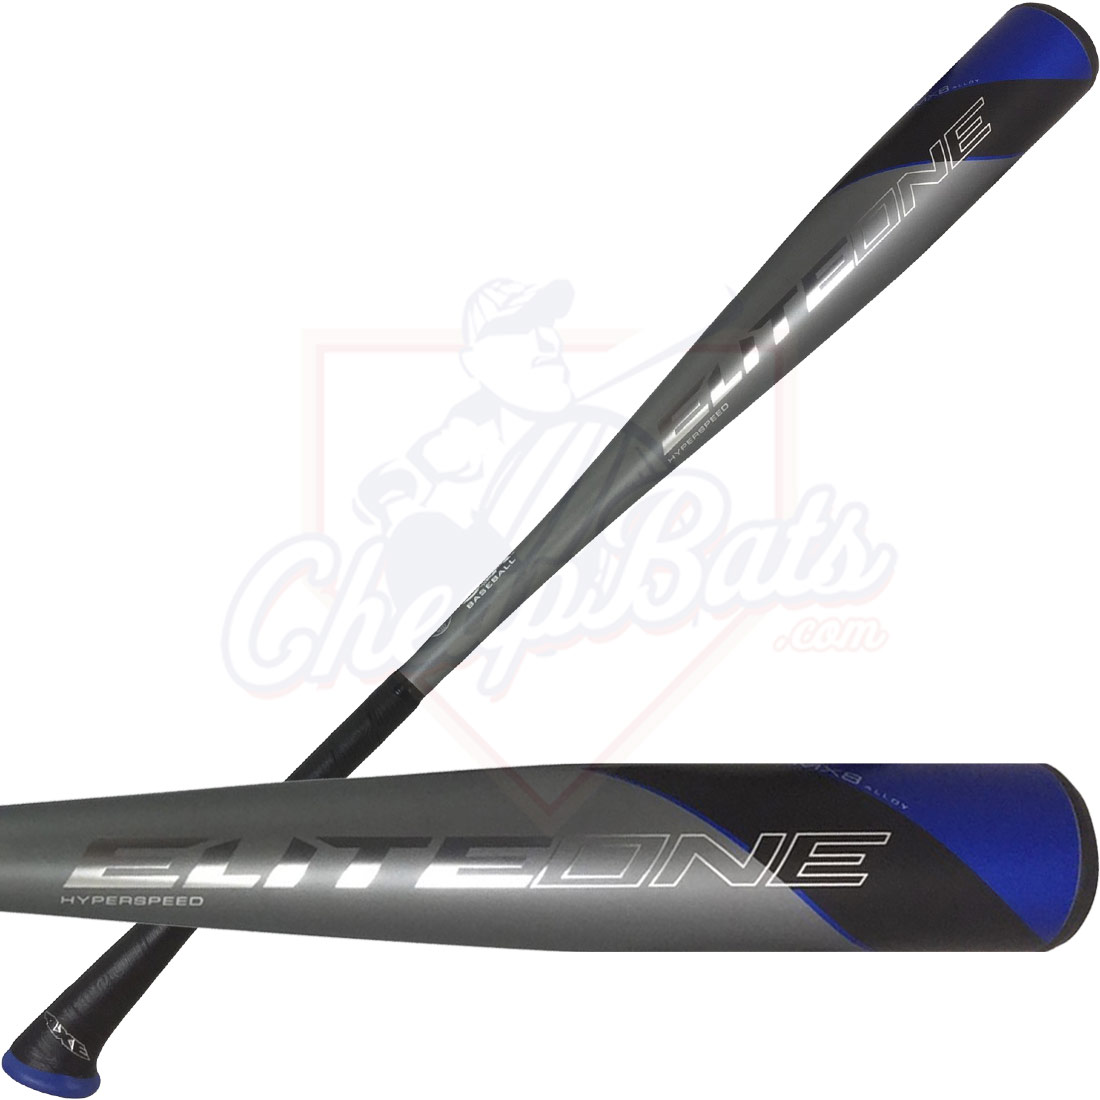 2021 Axe EliteOne HyperSpeed Youth USA Baseball Bat -11oz L192J